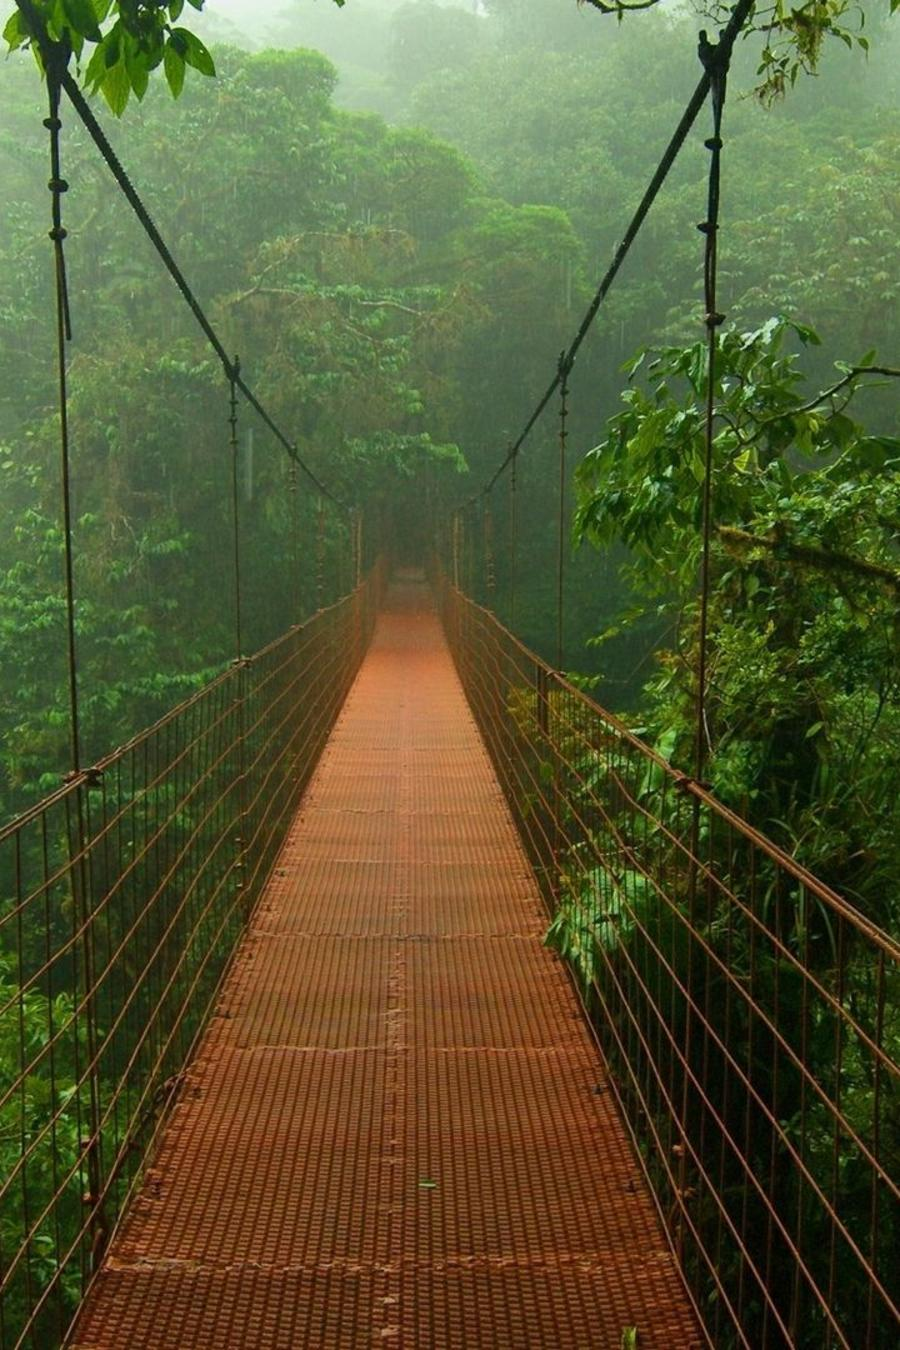 bridge-photo-jungle.jpg